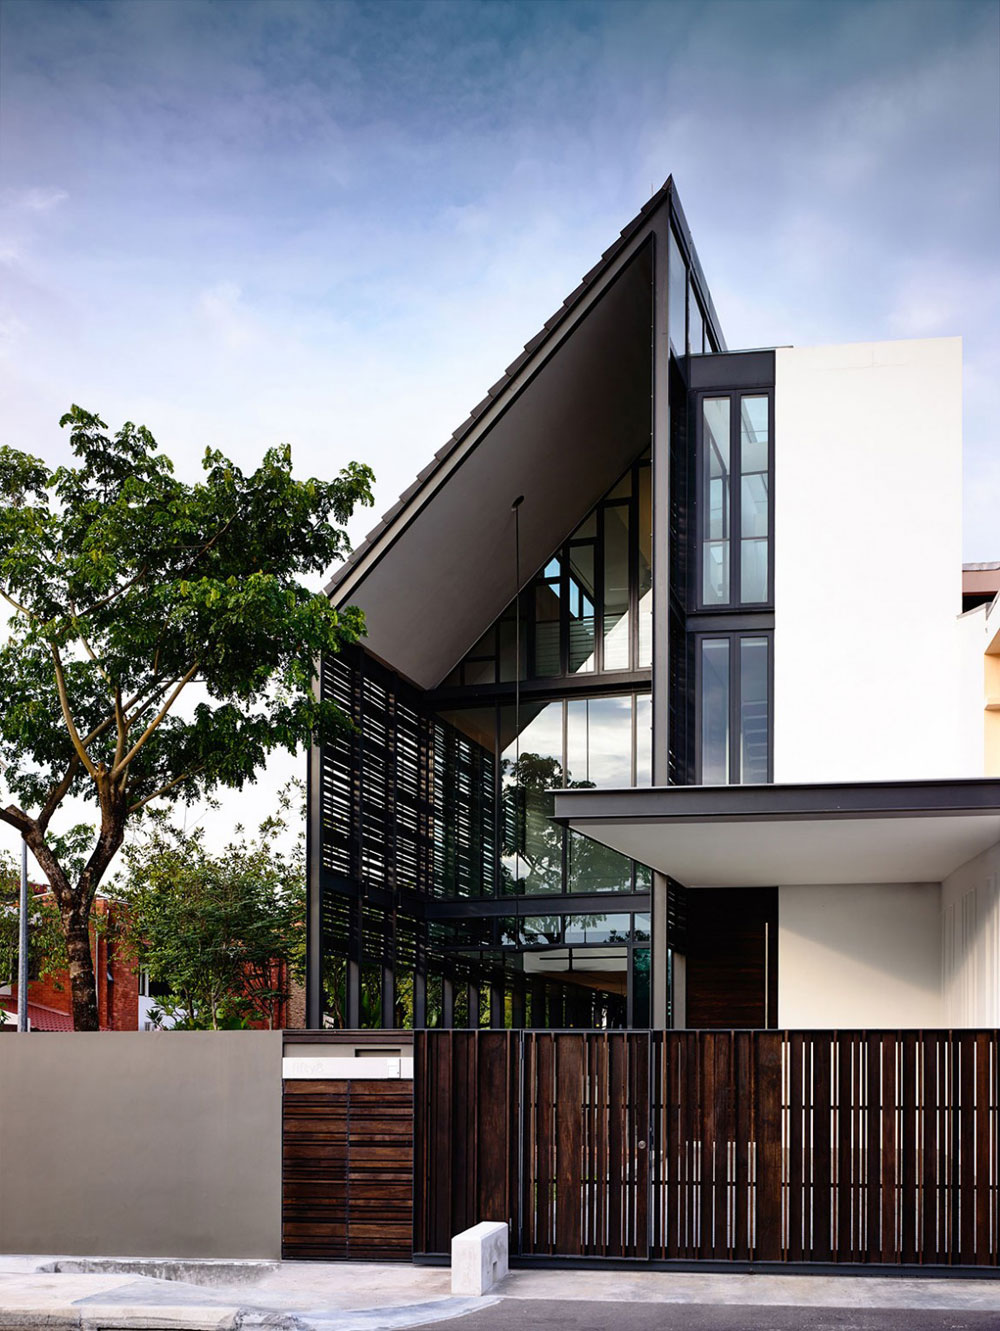 Beautiful House Buildings Modern House - Architecture design inspiration showcasing beautiful buildings